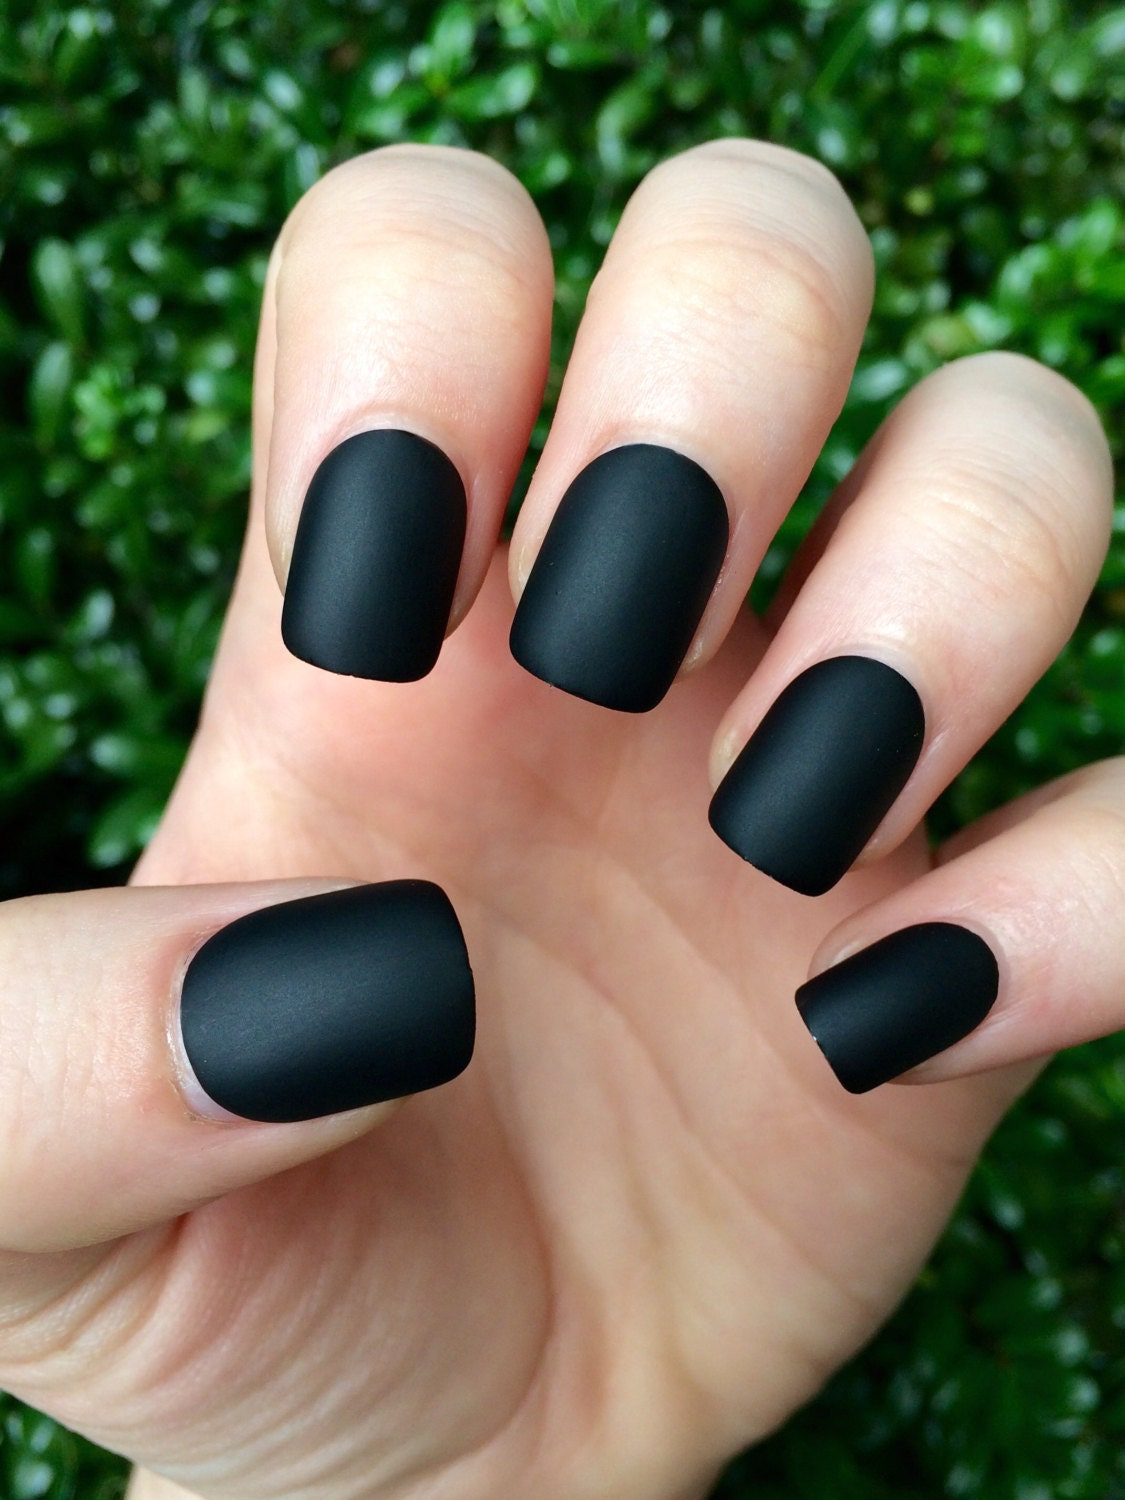 Black matte nails matte nails black matte fake nails